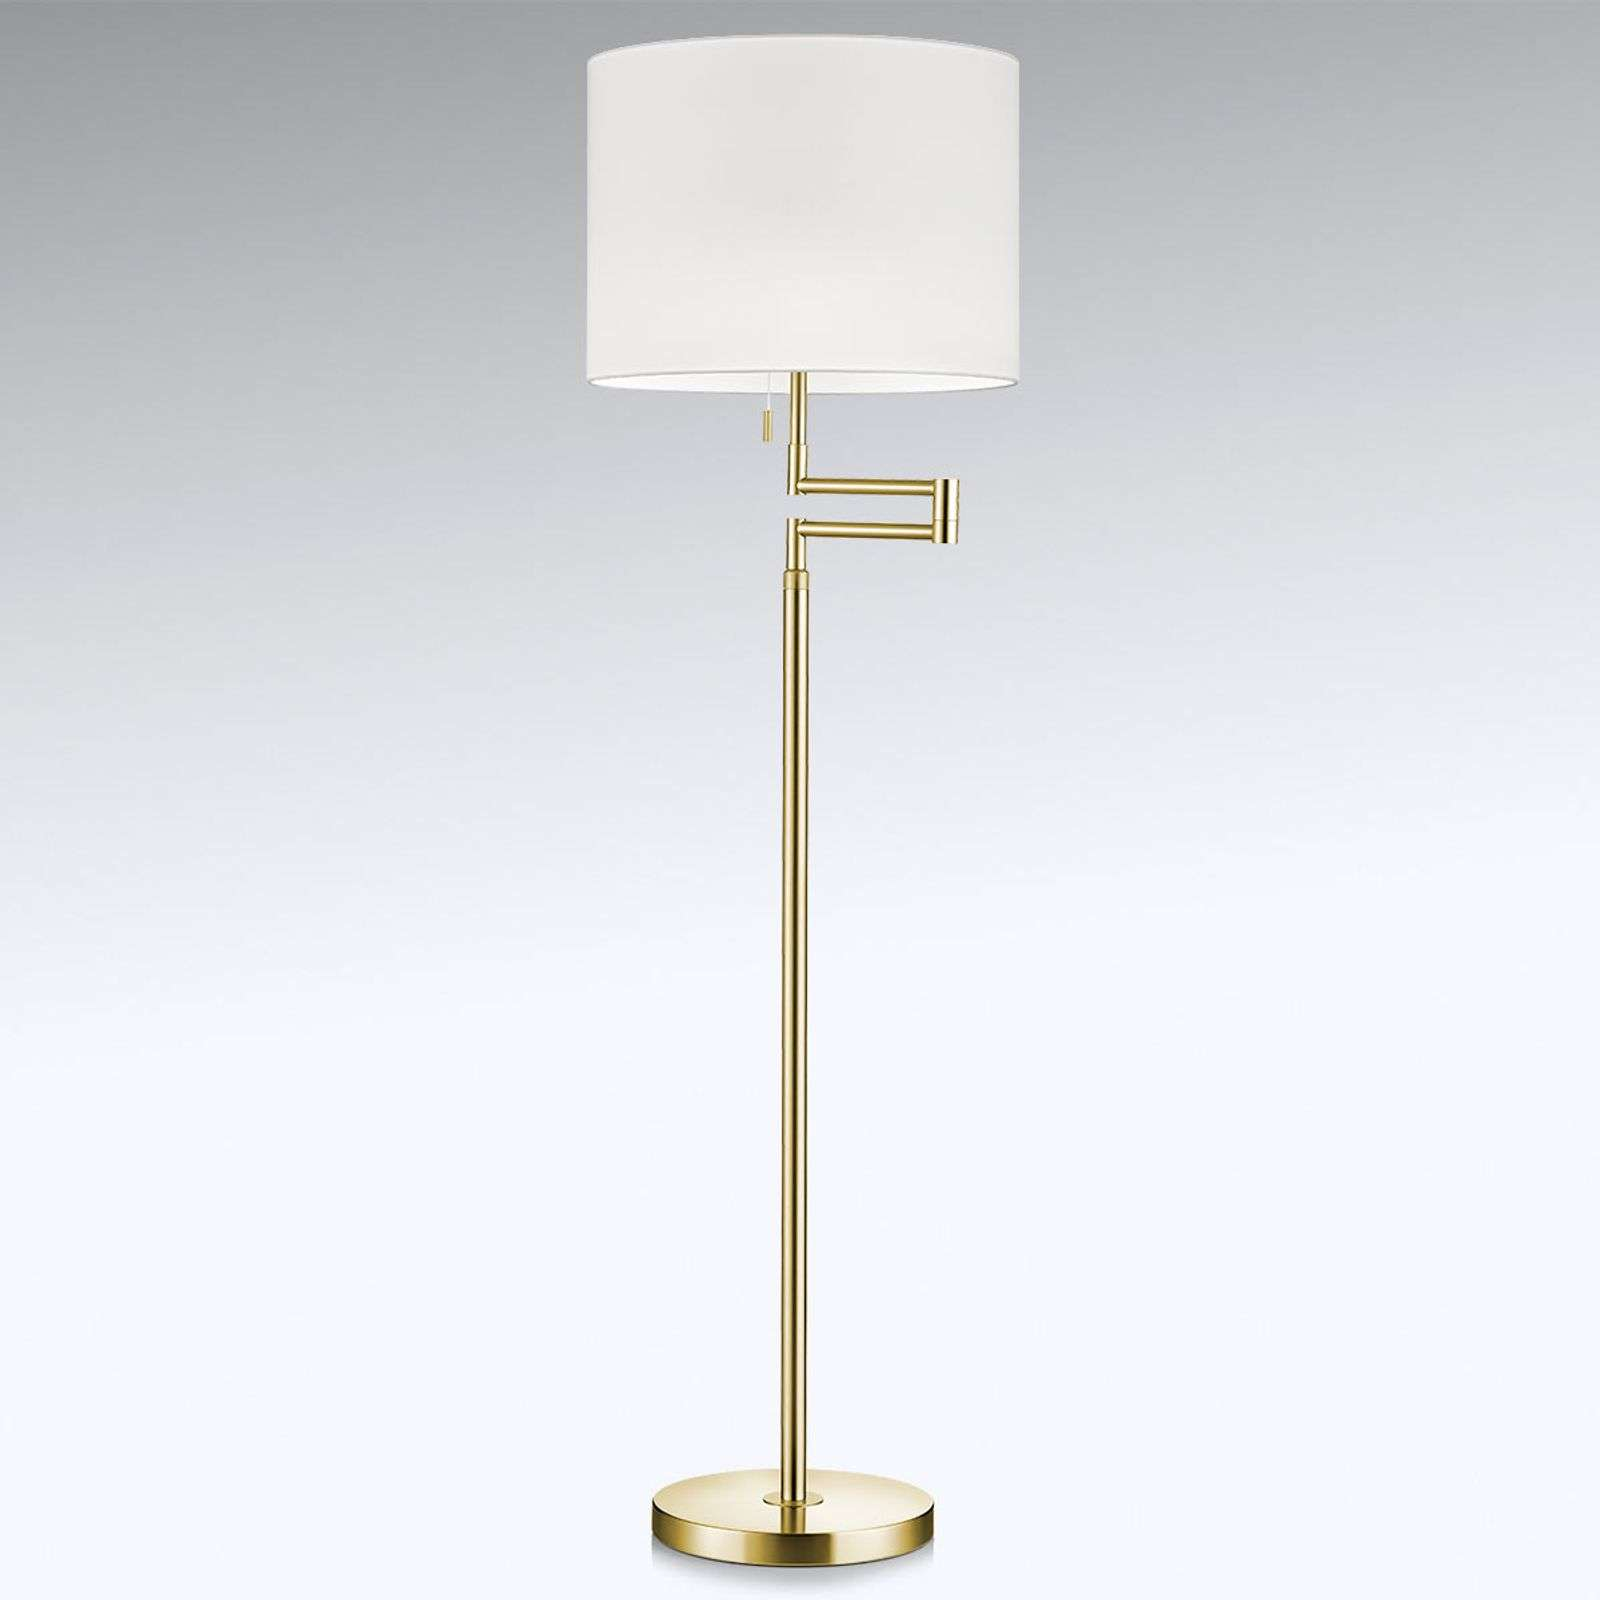 Lampadaire LED Lilian dimmable, abat-jour chintz